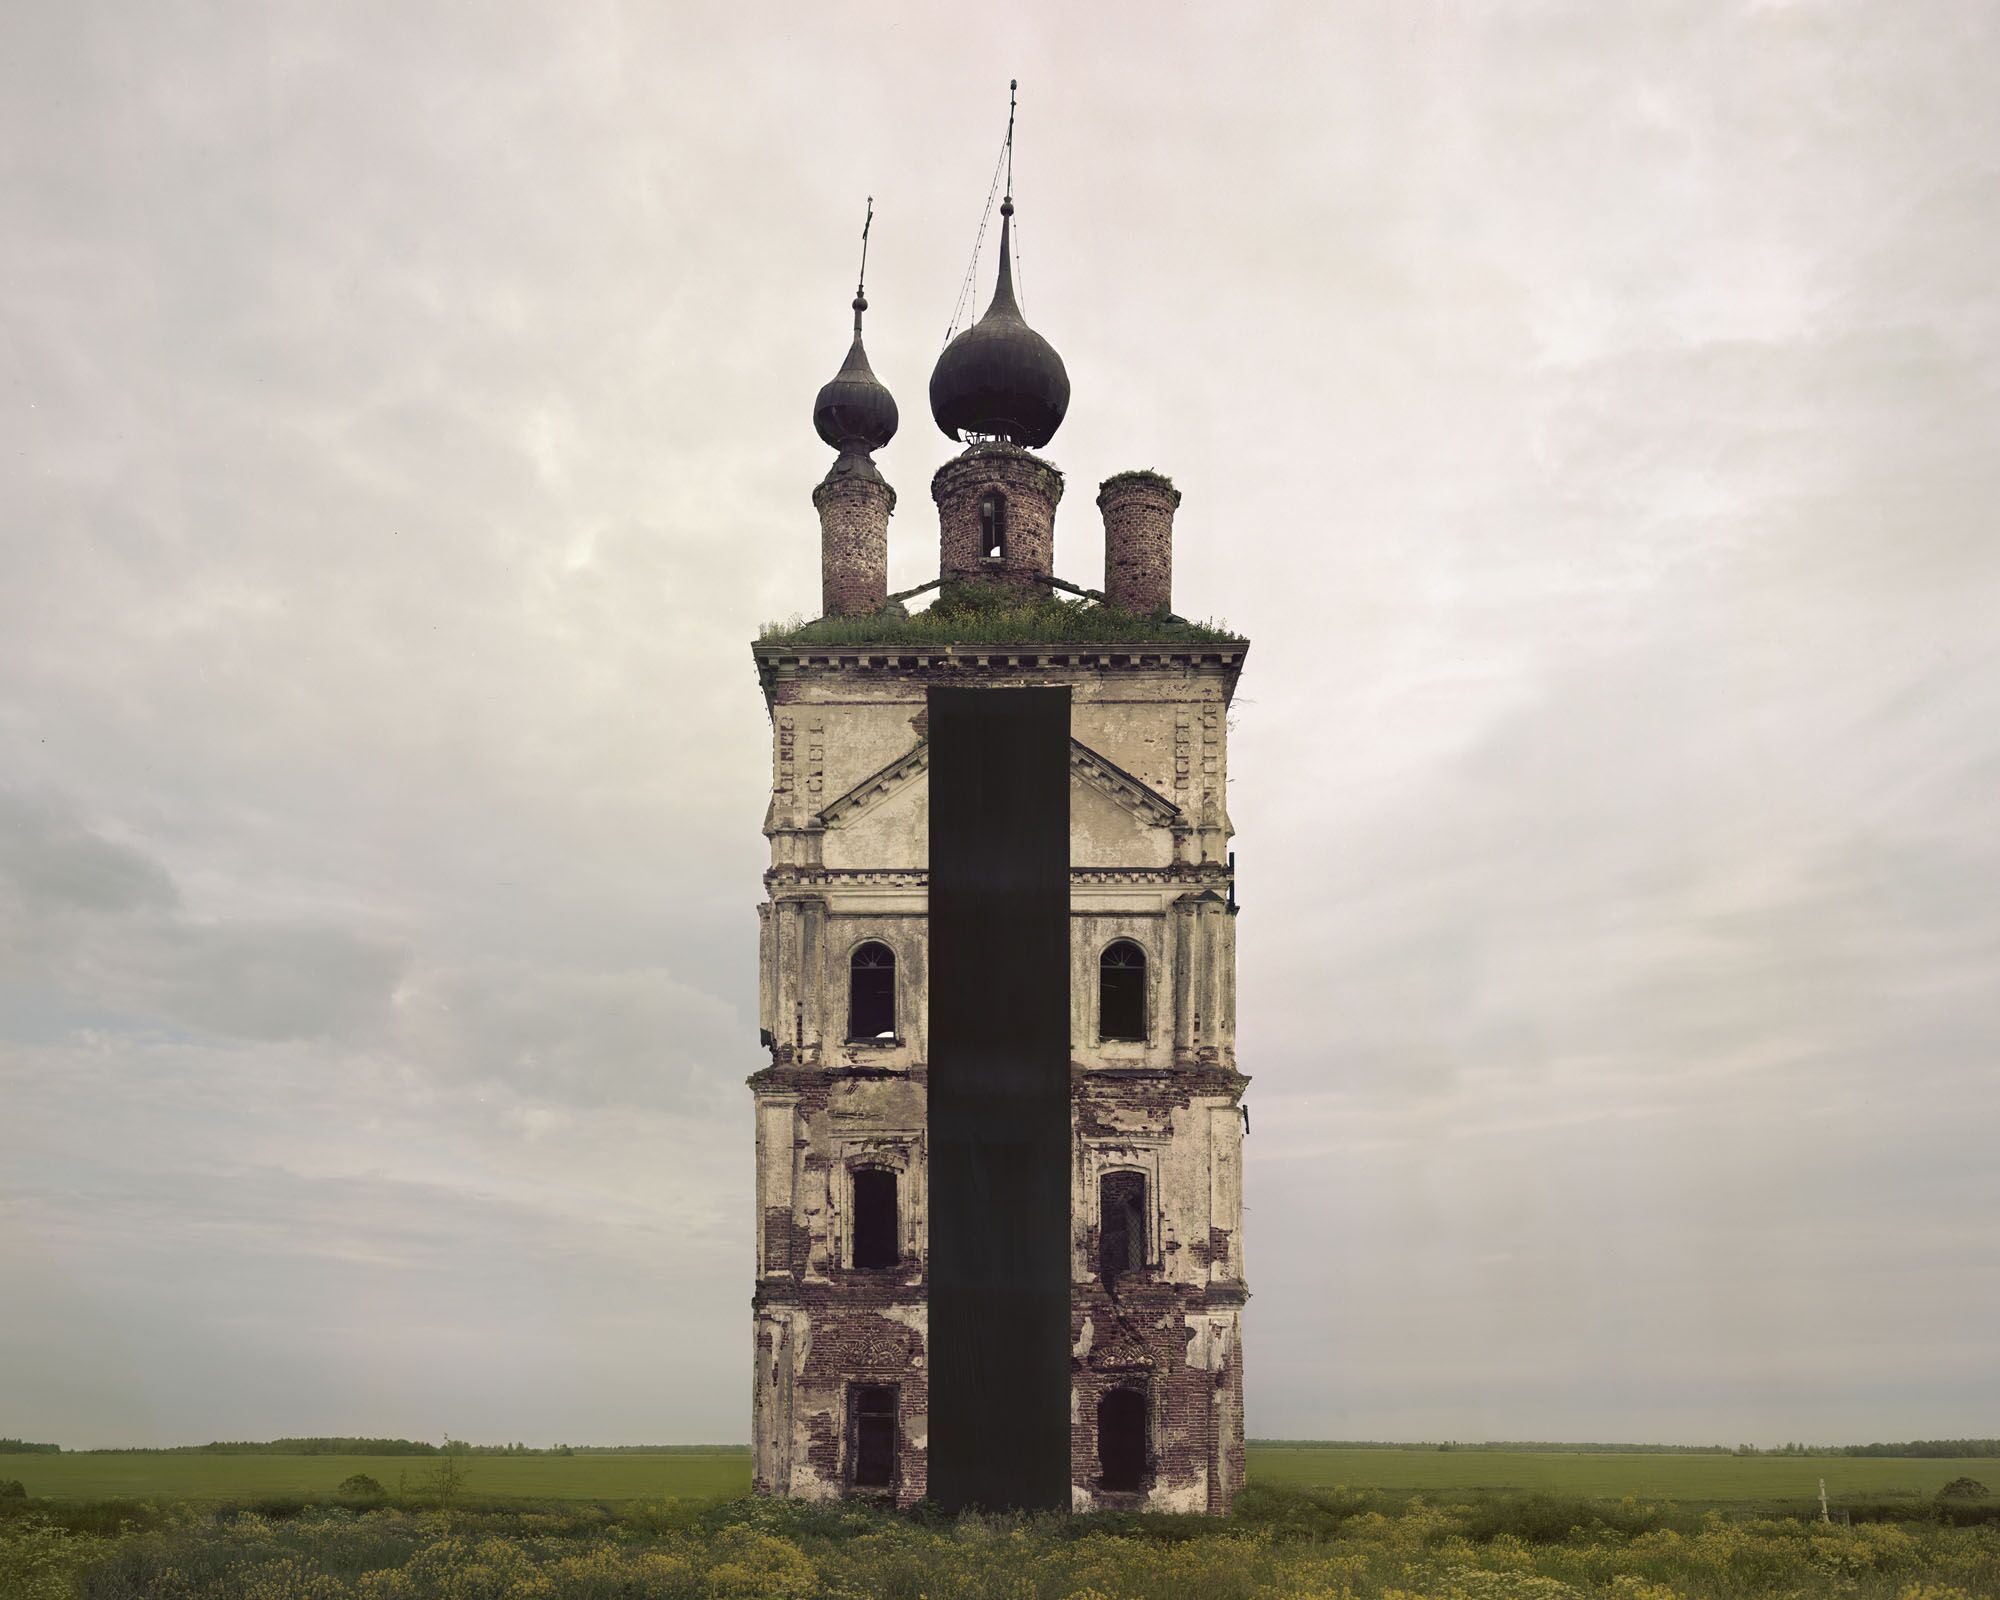 Danila Tkachenko, Monuments #1, 2018, Stampa a getto d'inchiostro, 96x120 cm, Courtesy of the artist